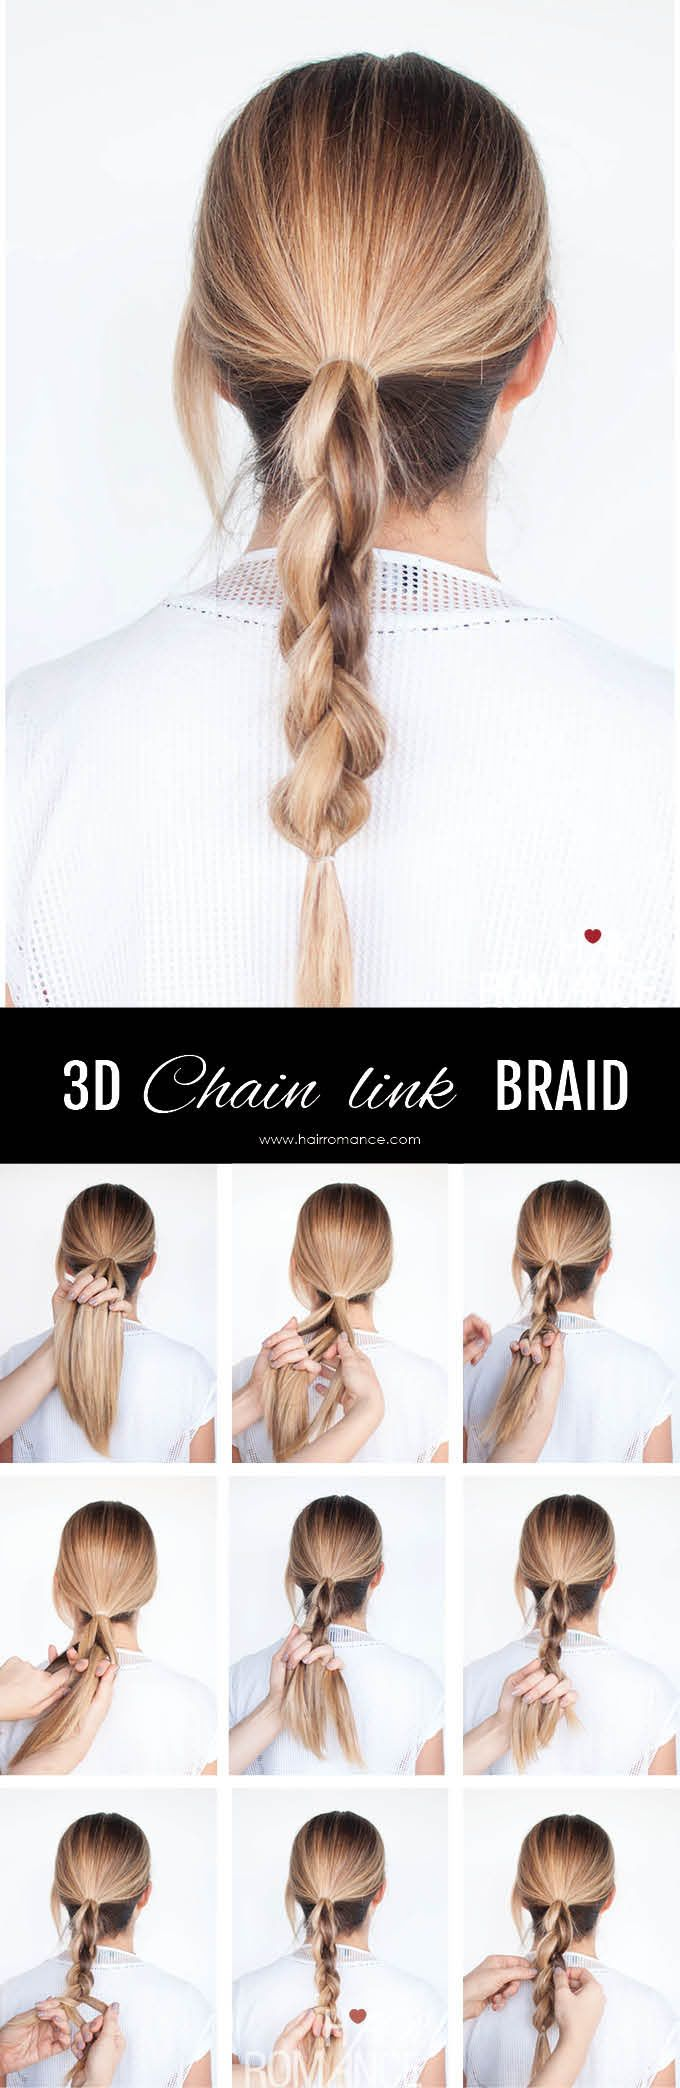 best the hairstyles i luv images on pinterest hairstyles make